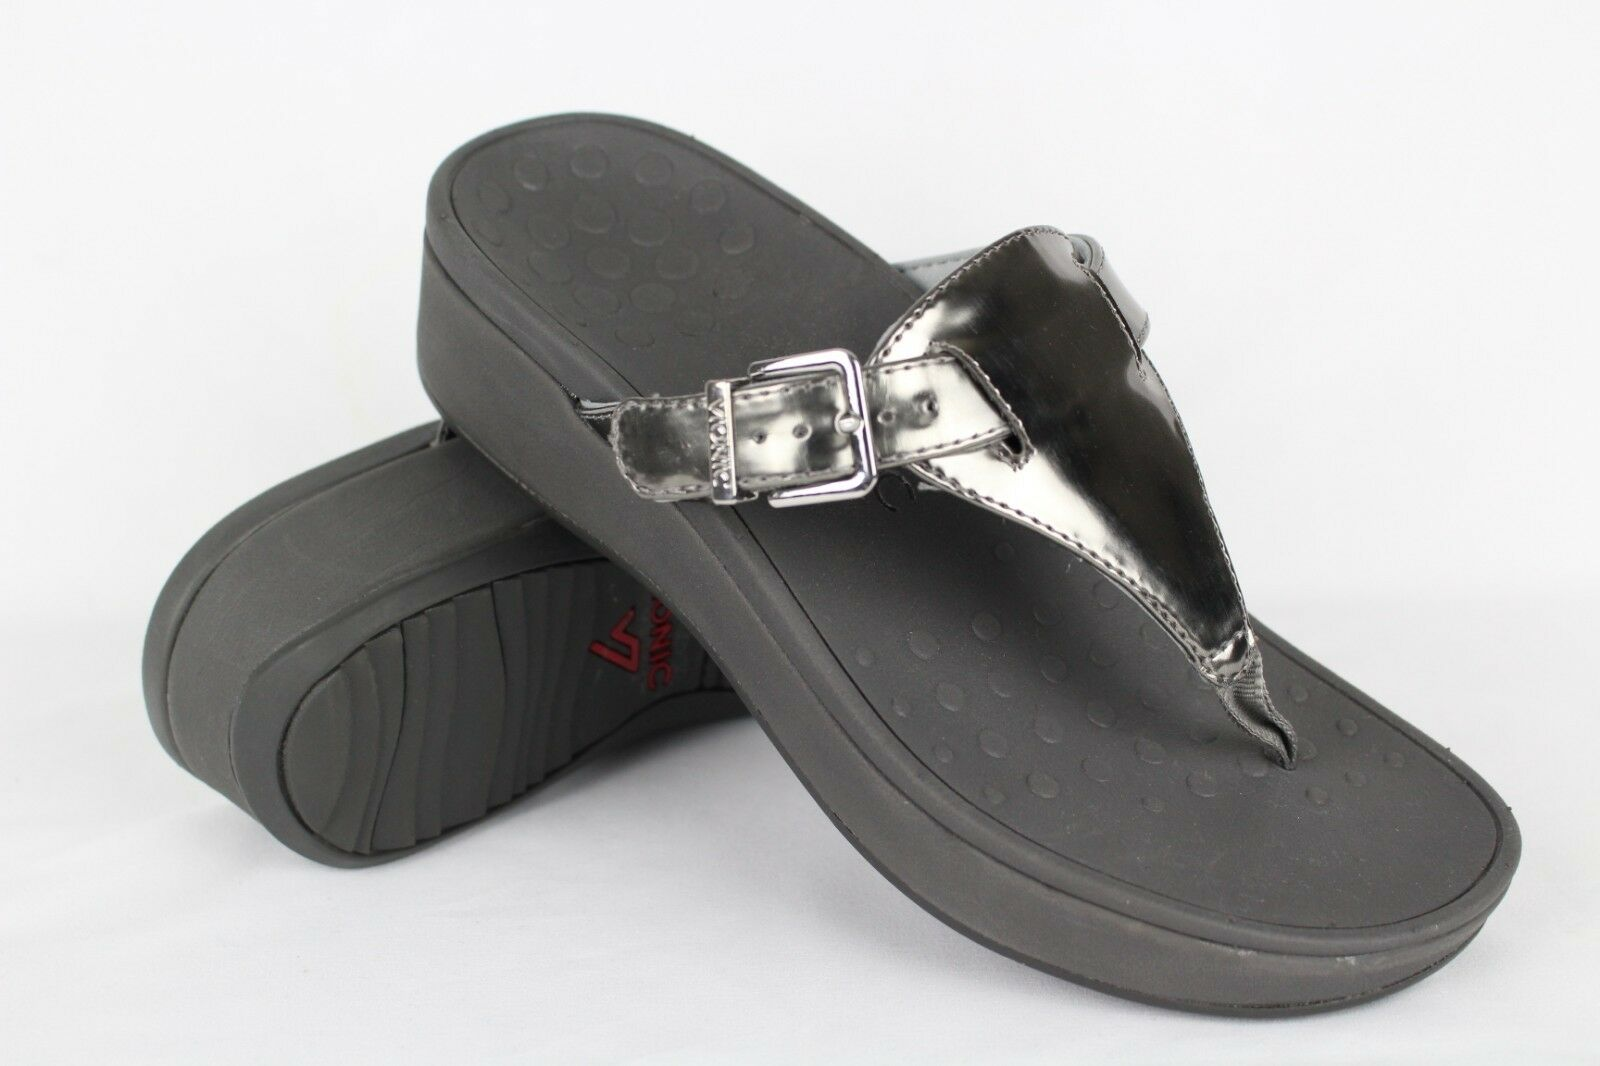 Vionic Orthaheel Women's Cooper Wedge Thong Sandals Size 8 Pewter